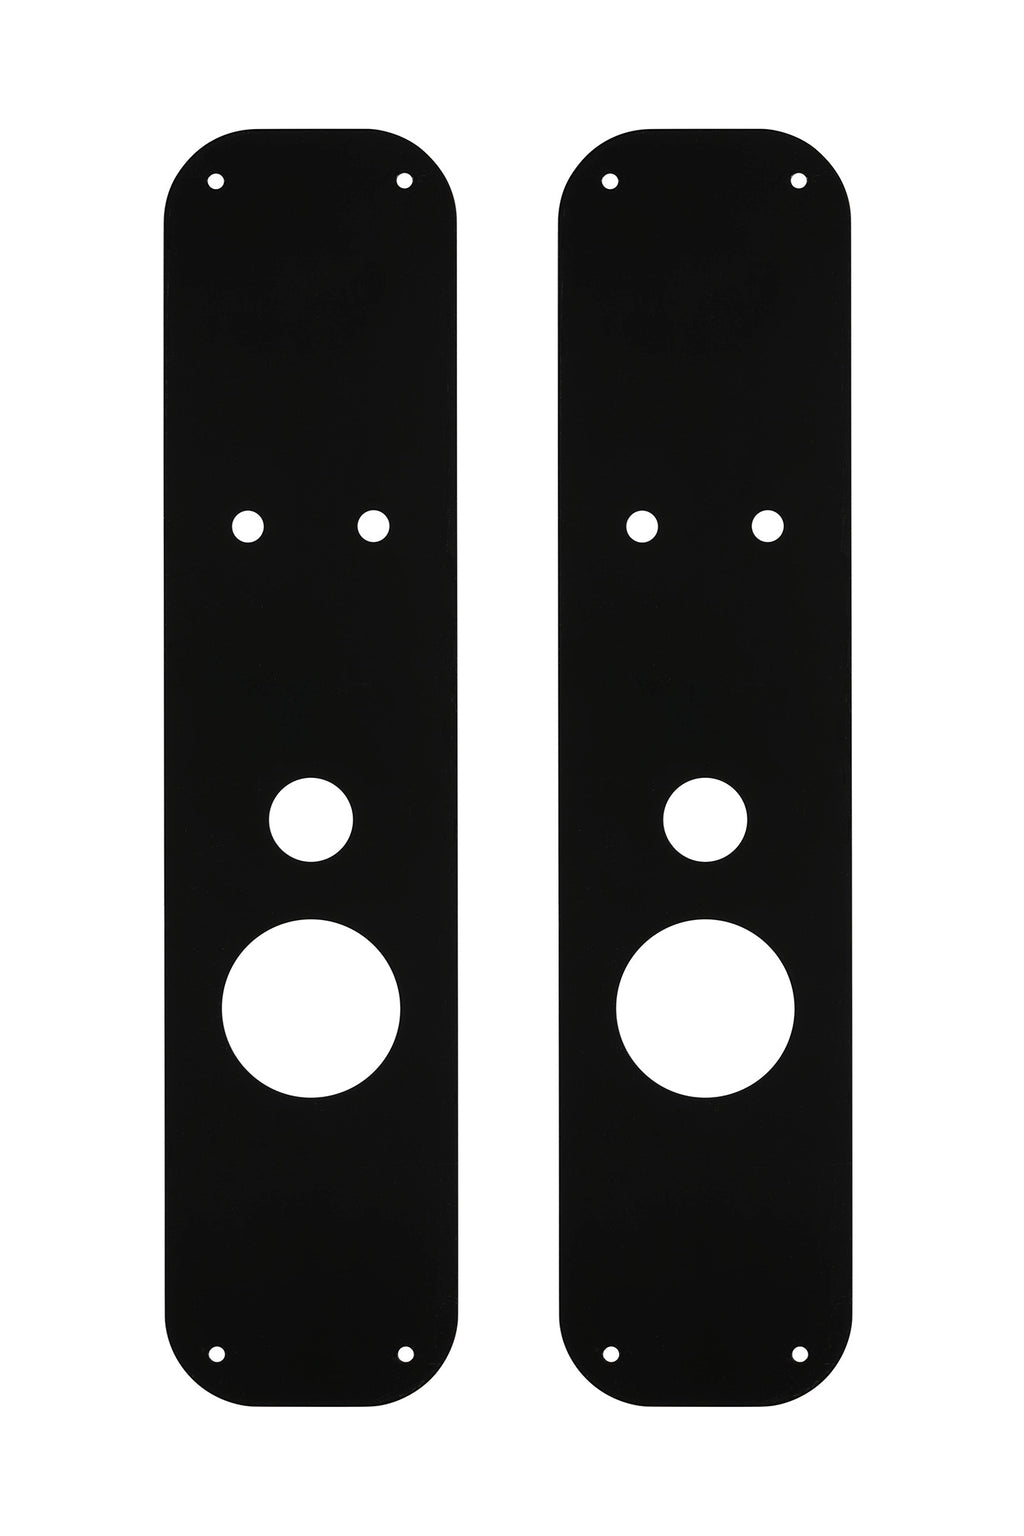 RemoteLock OpenEdge CG Long Coverplates